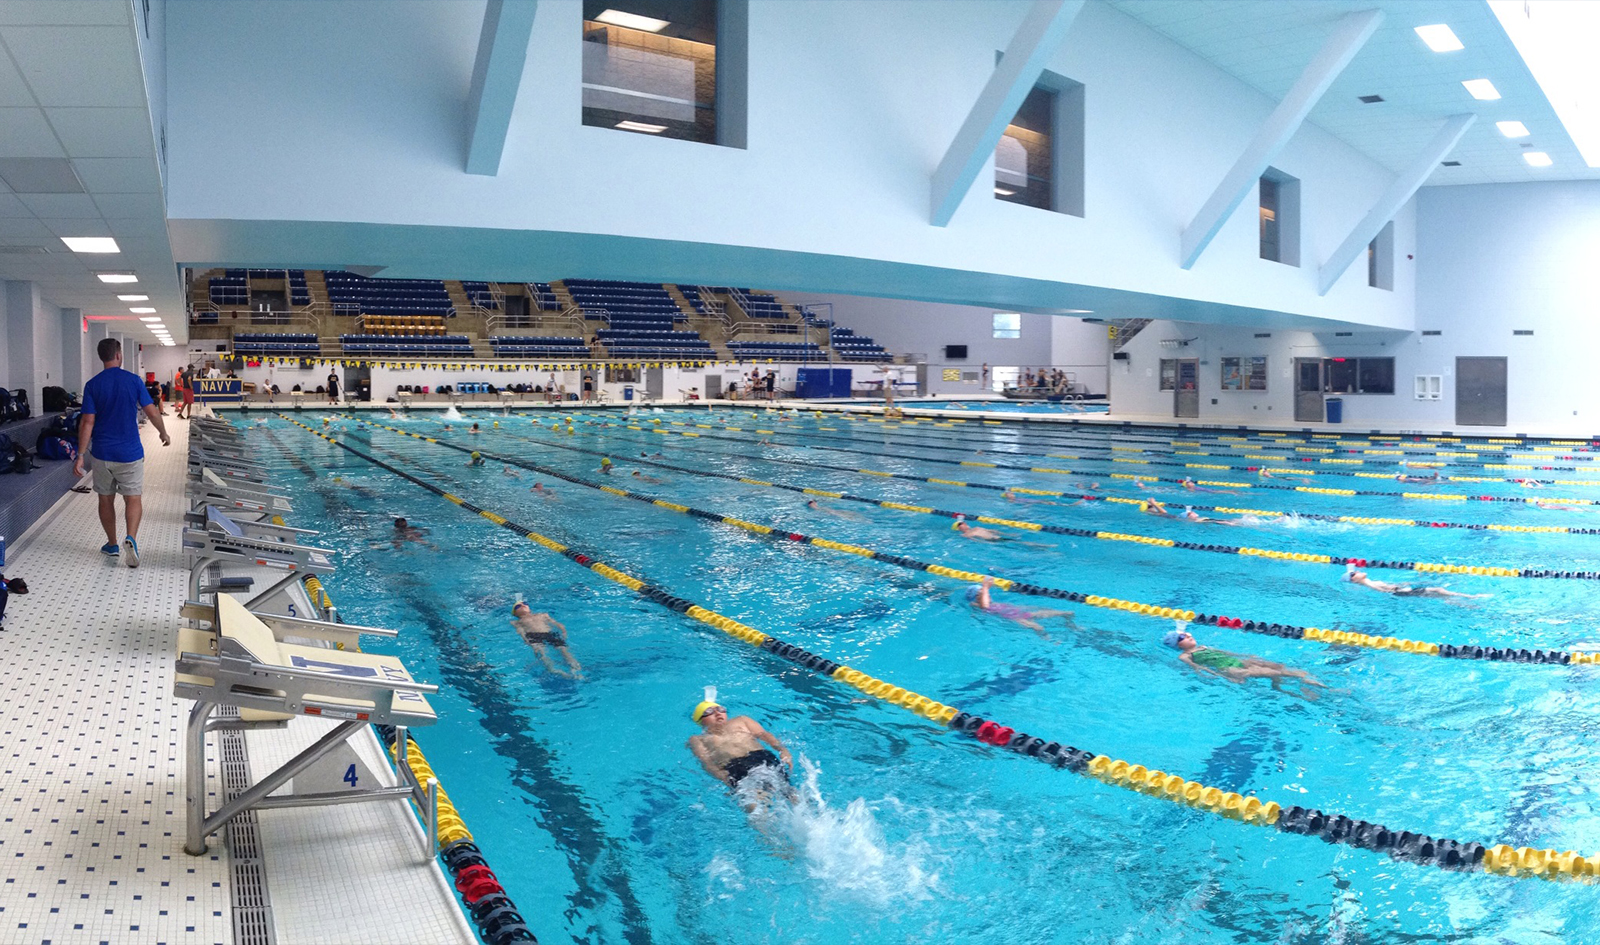 Navy Academy Pool